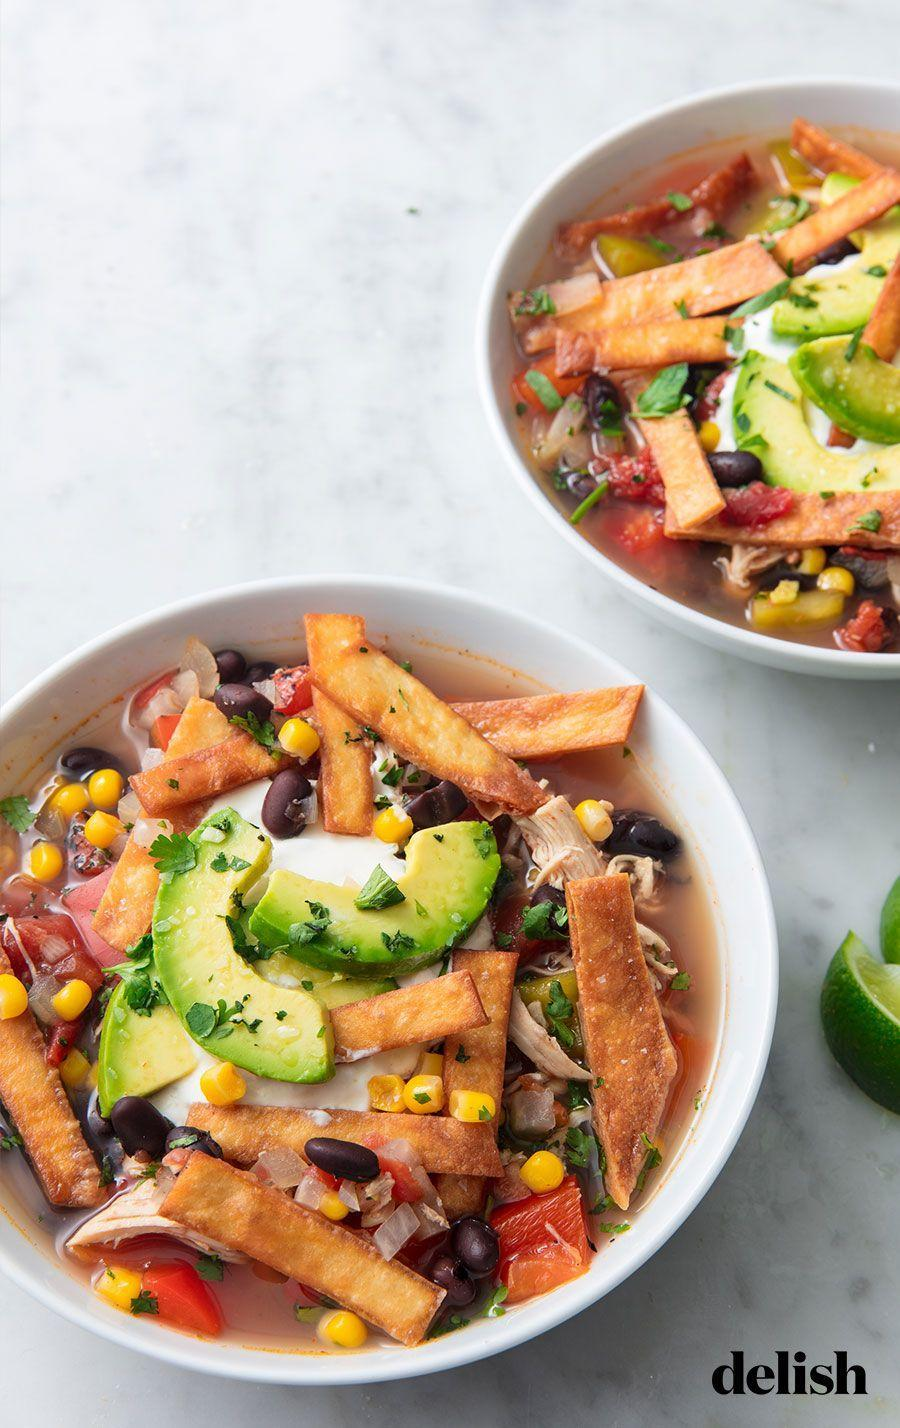 """<p>This chicken soup is the easiest way to warm up.</p><p>Get the recipe from <a href=""""https://www.delish.com/cooking/recipe-ideas/recipes/a51825/best-slow-cooker-chicken-tortilla-soup-recipe/"""" rel=""""nofollow noopener"""" target=""""_blank"""" data-ylk=""""slk:Delish"""" class=""""link rapid-noclick-resp"""">Delish</a>.</p>"""